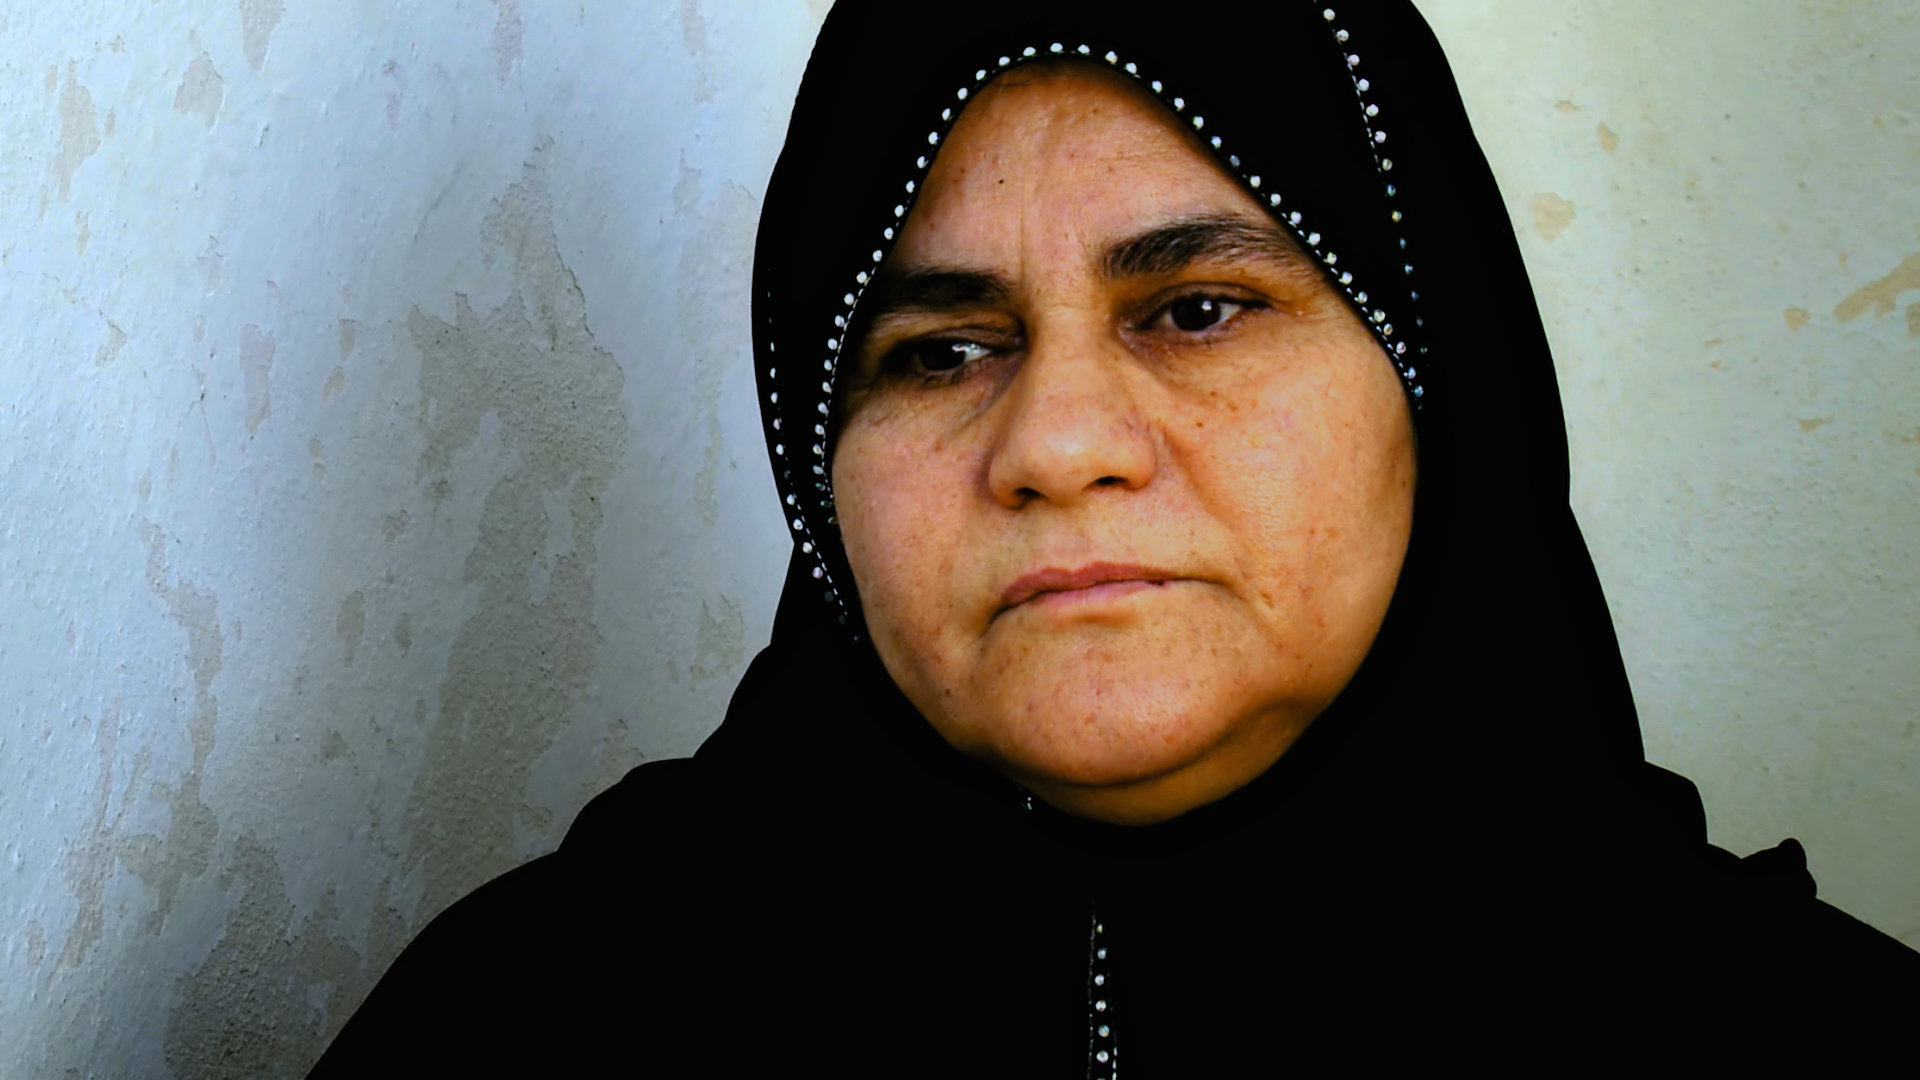 More than 50 villagers from Kureme died during Anfal. FAIROOZ TAHA SAADI waited three years for her husband to return, but in 1992 American forensic specialists uncovered mass graves in Kureme. They discovered the pyjamas her husband was wearing when captured. This established beyond doubt that he had been executed by the Iraqis.